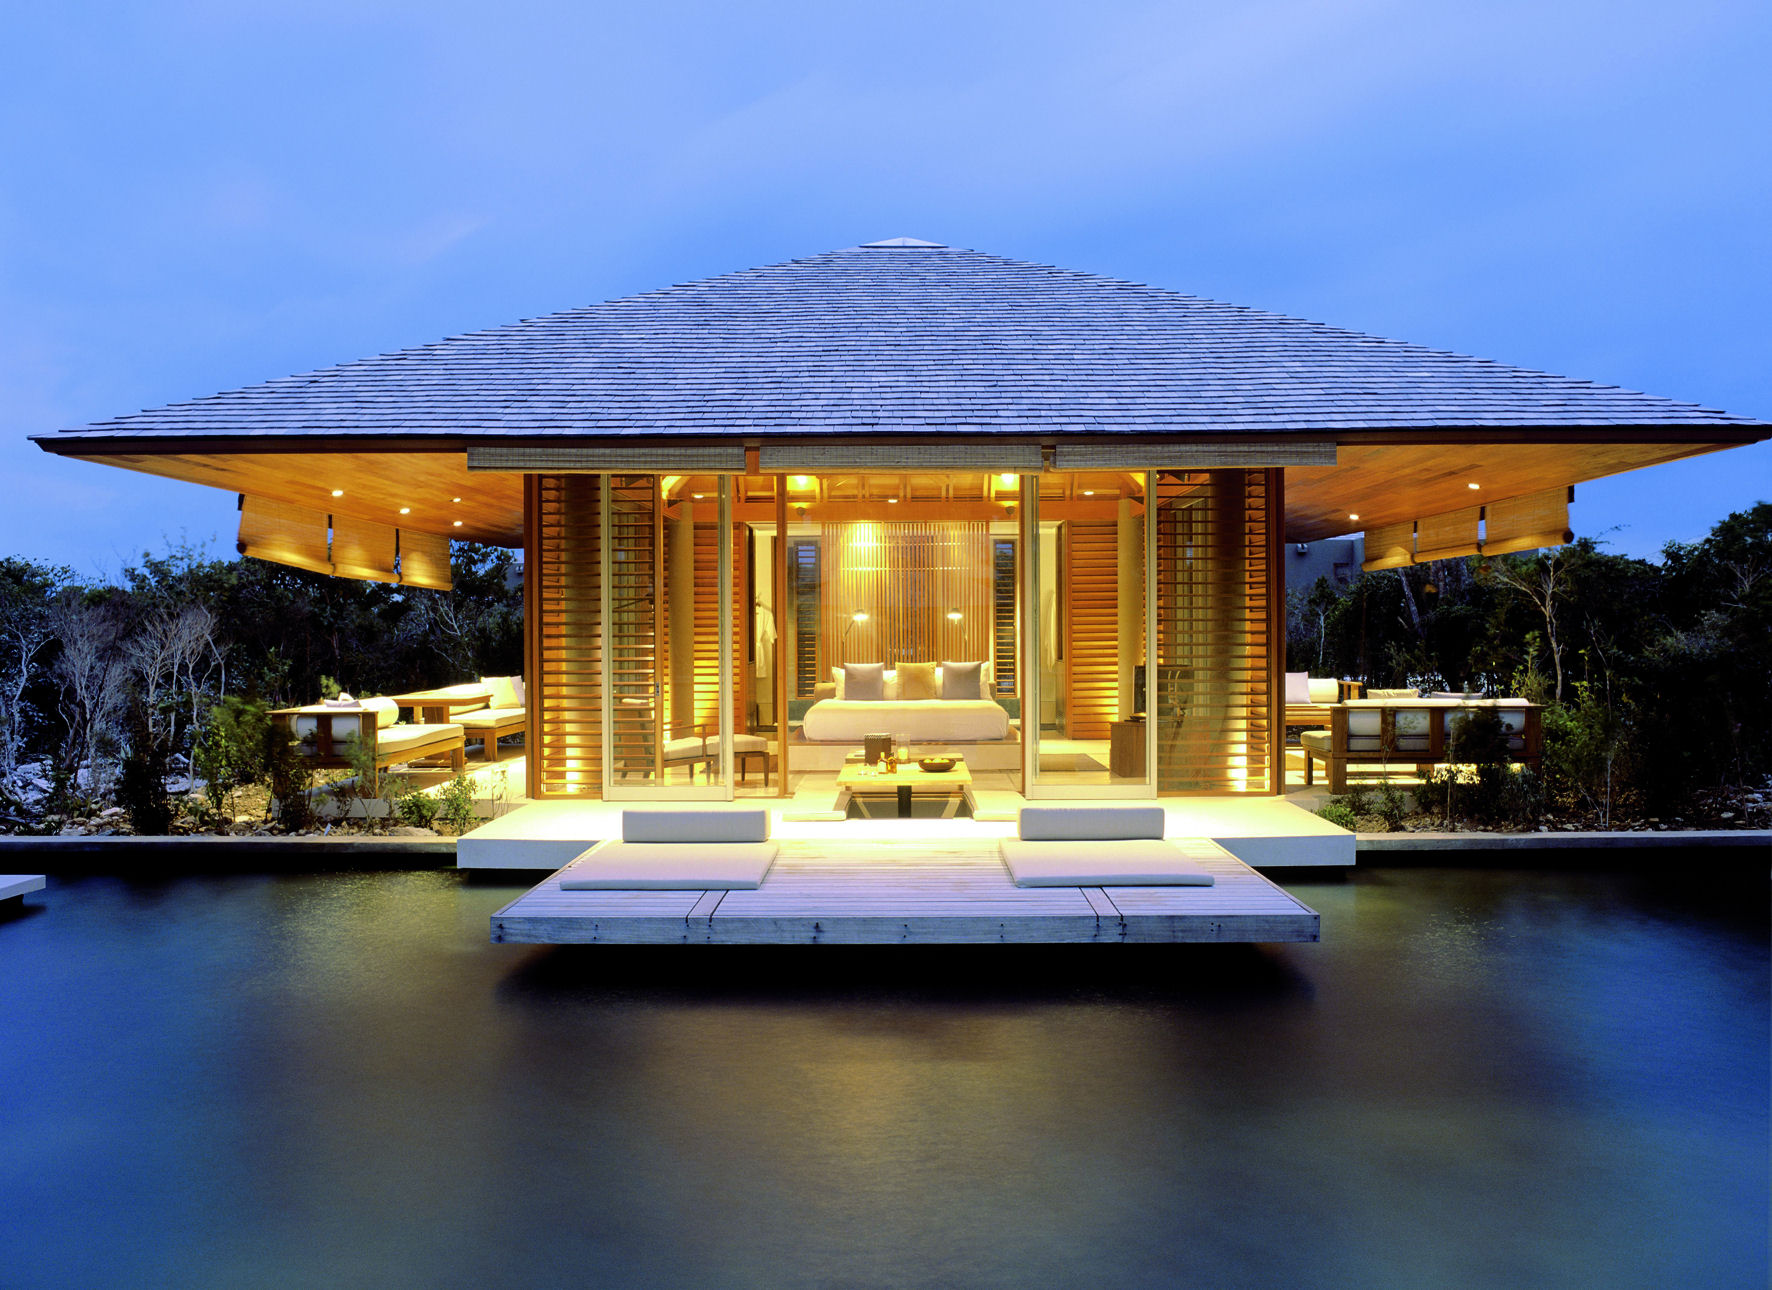 Luxury homes archives architecture world for Luxury home designers architects